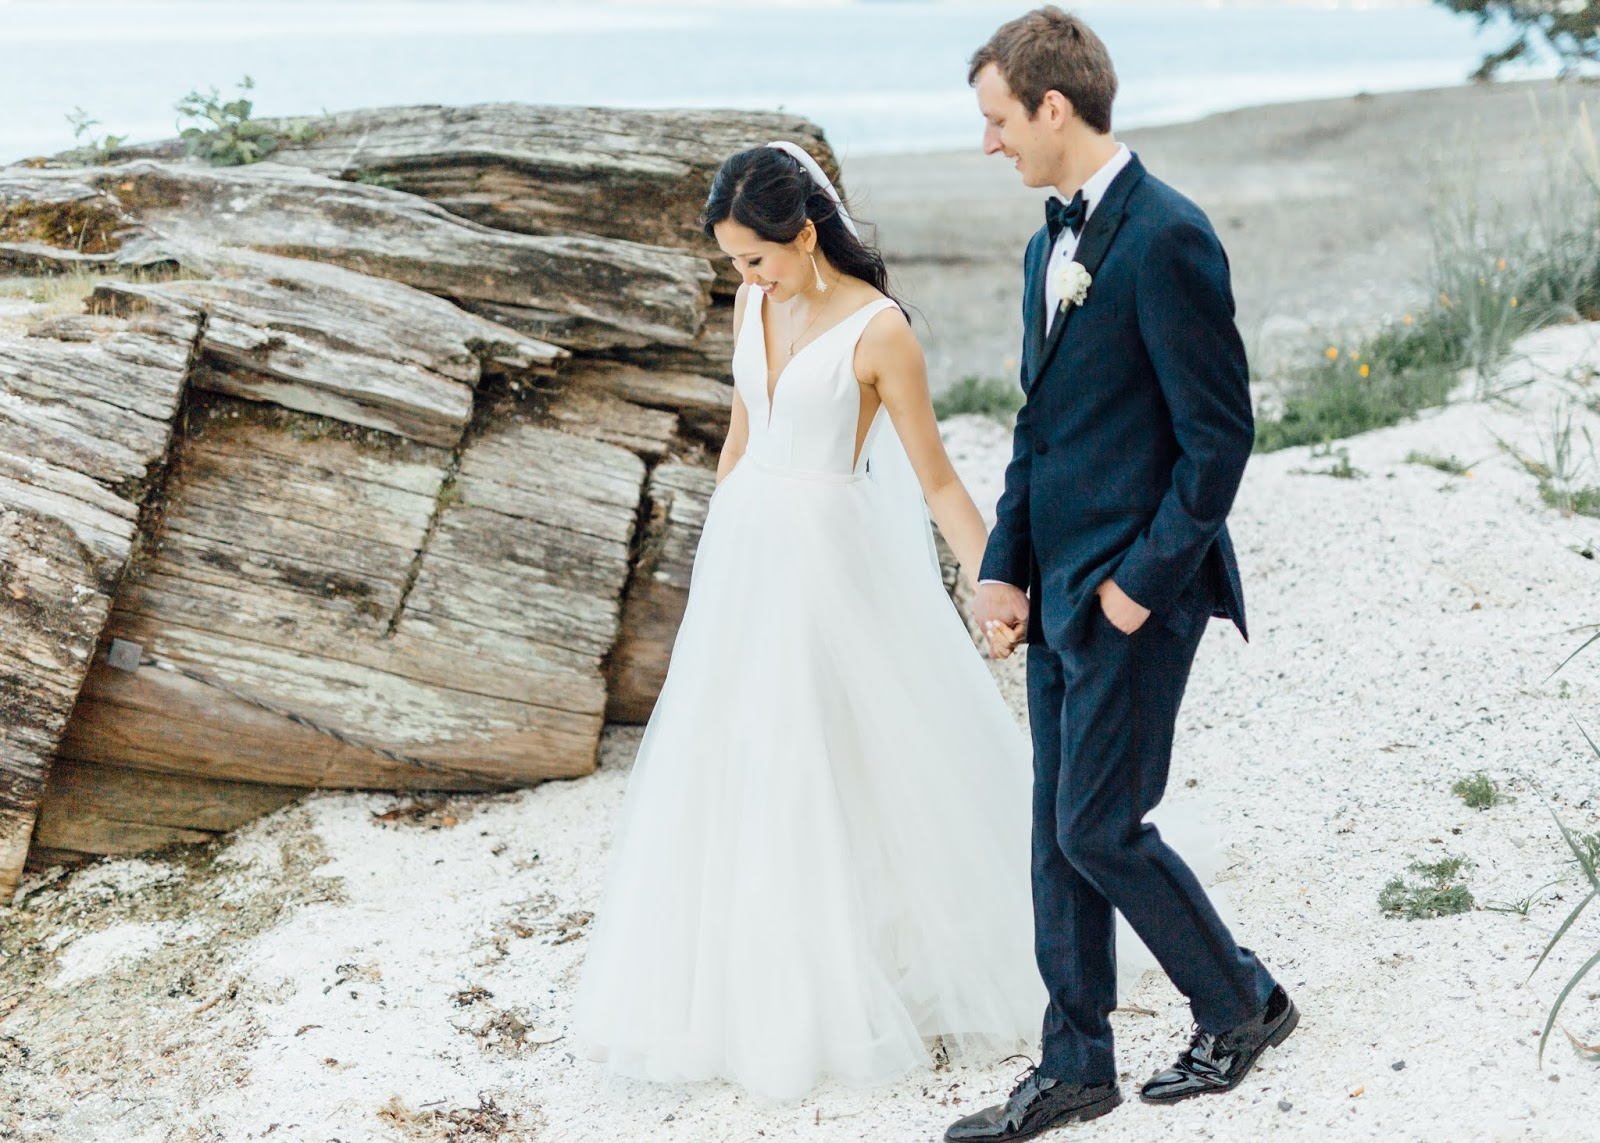 Kiana Lodge-Garden Wedding Inspiration-Bainbridge Photographers-Something Minted Photography